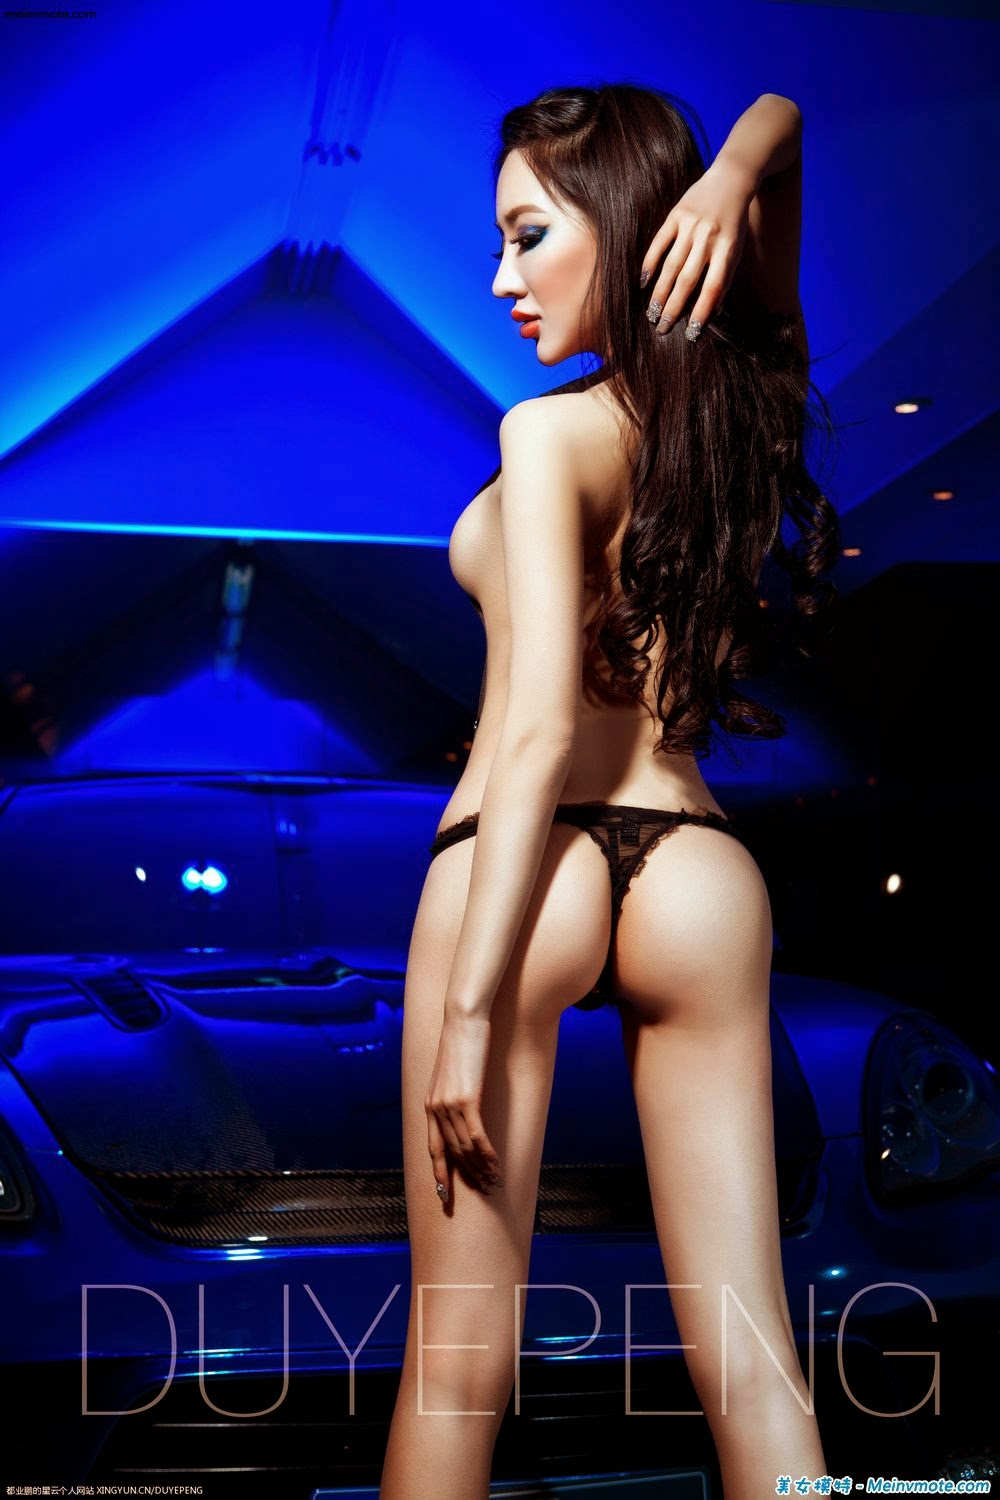 U.S. model Sophie Wang Ke muscular half-naked photo